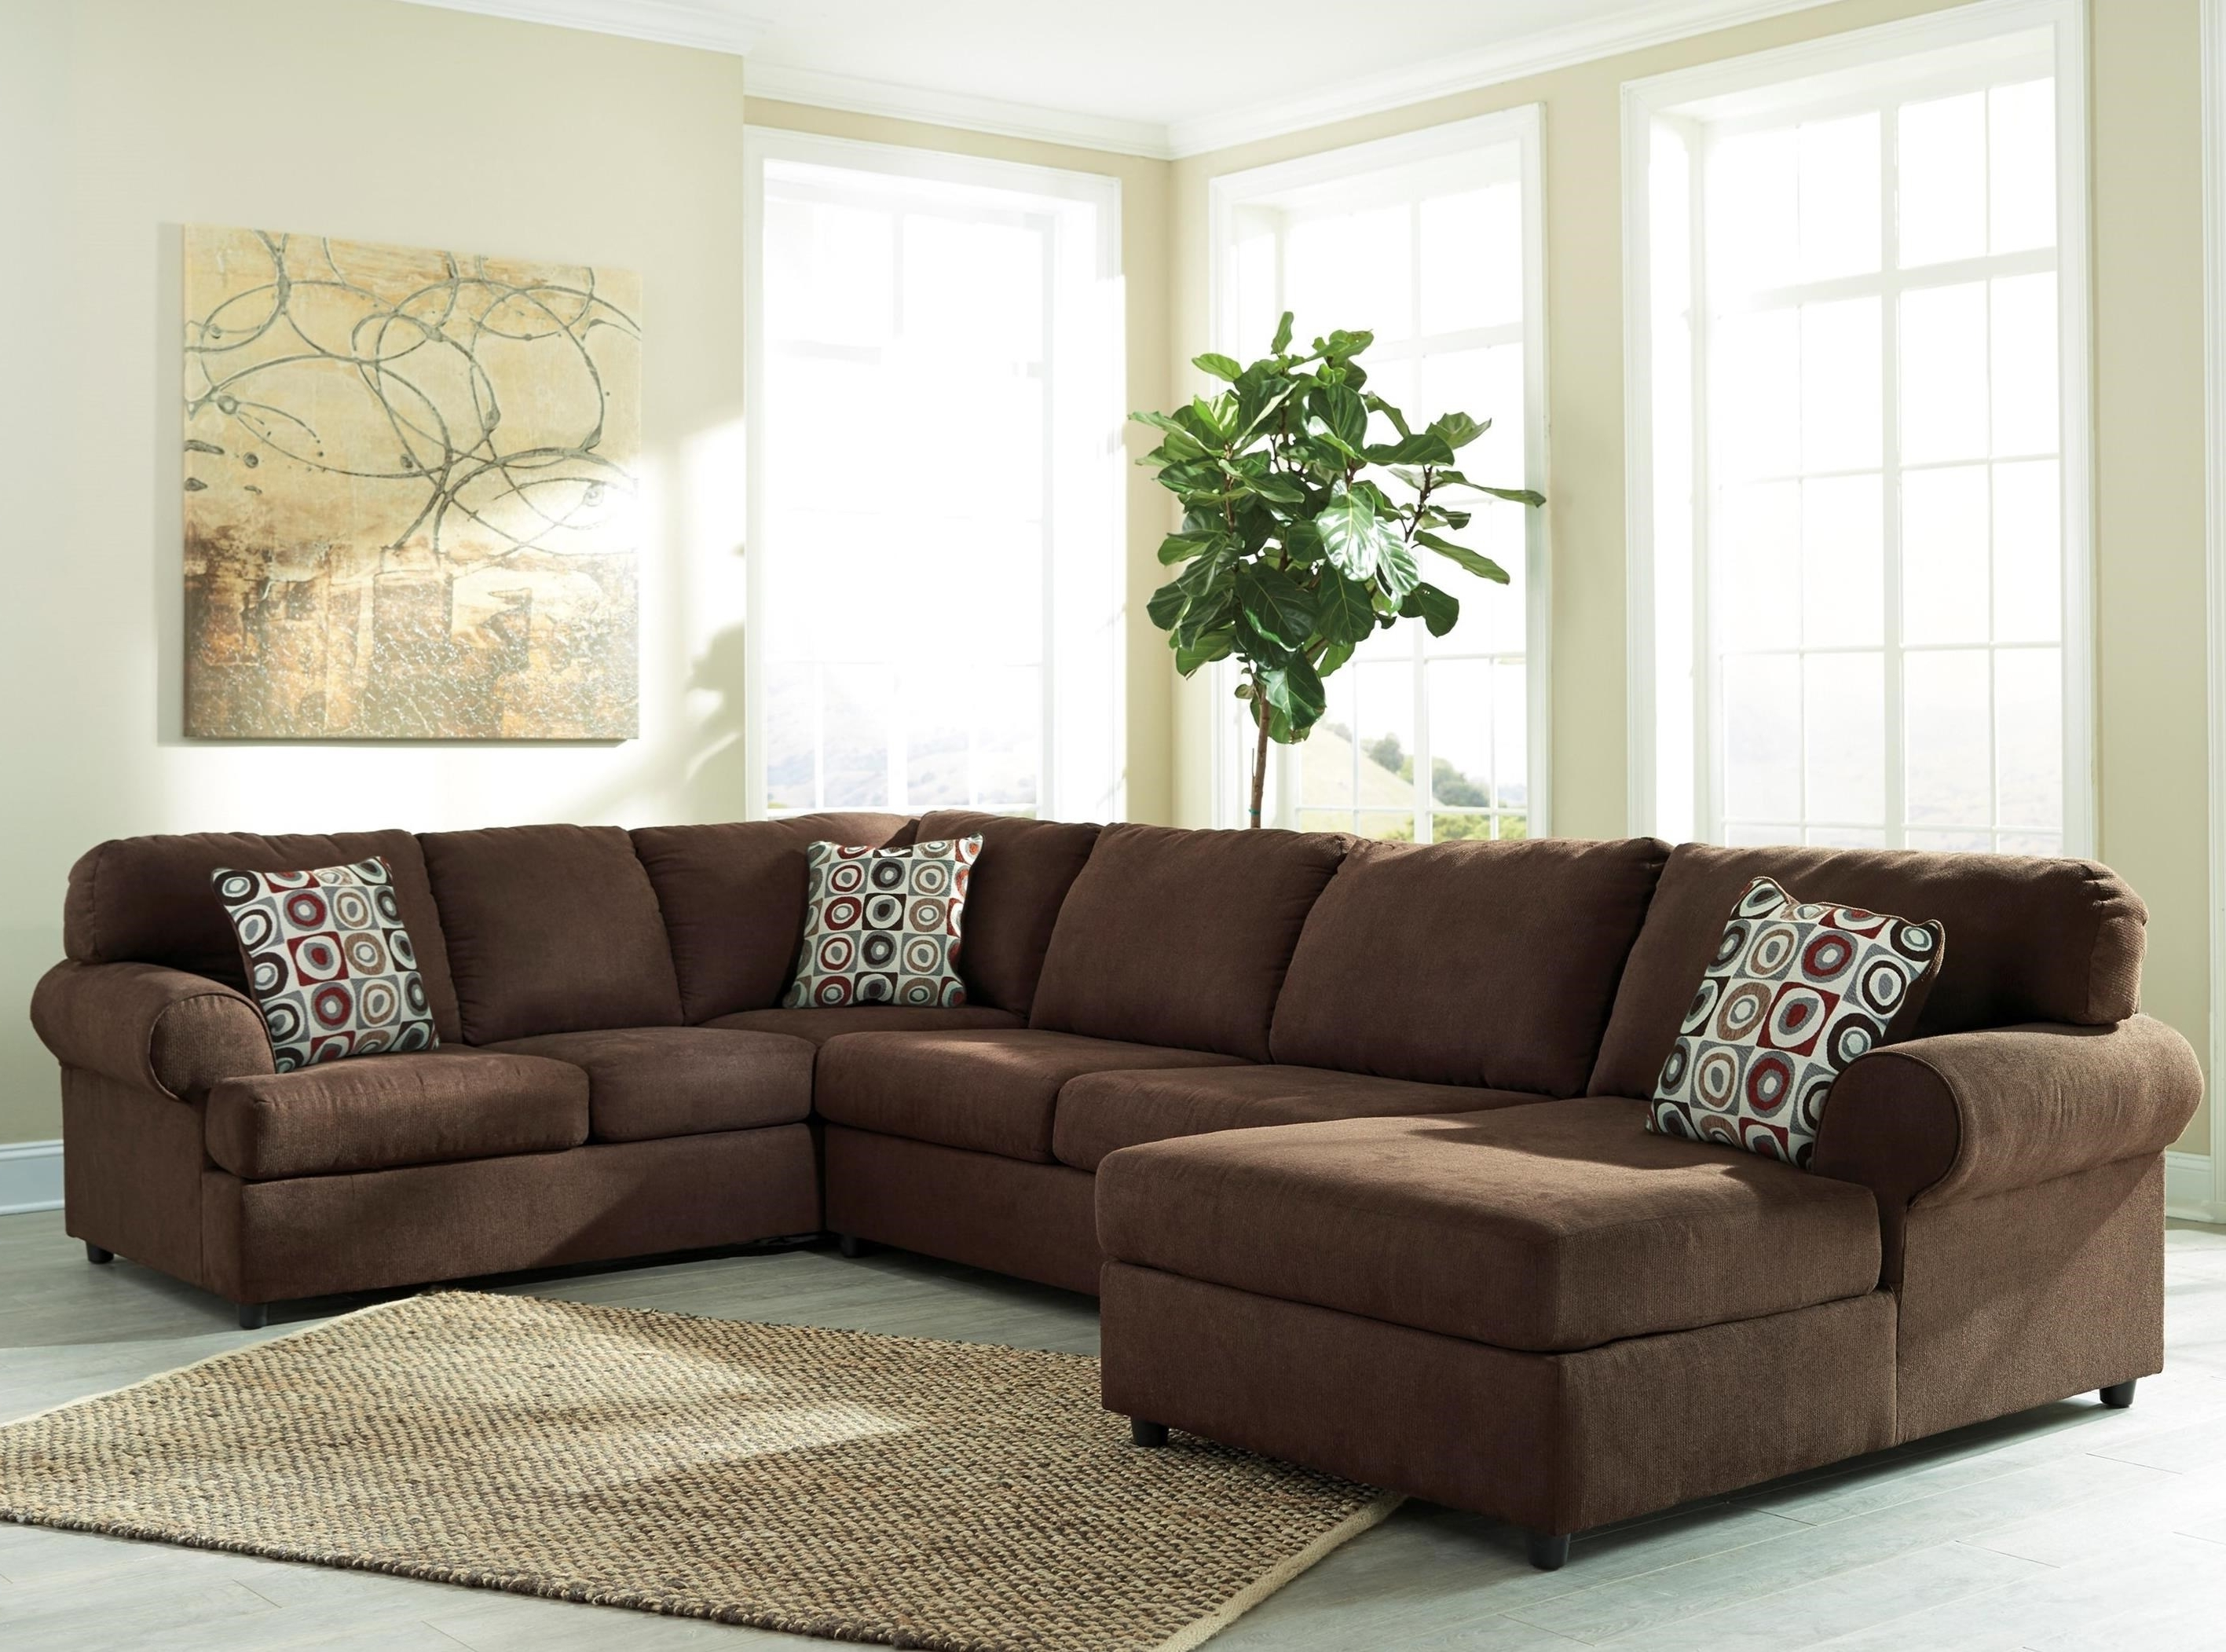 Widely Used Ashley Furniture Chaise Sofas Within Signature Designashley Jayceon 3 Piece Sectional With Left (View 14 of 15)